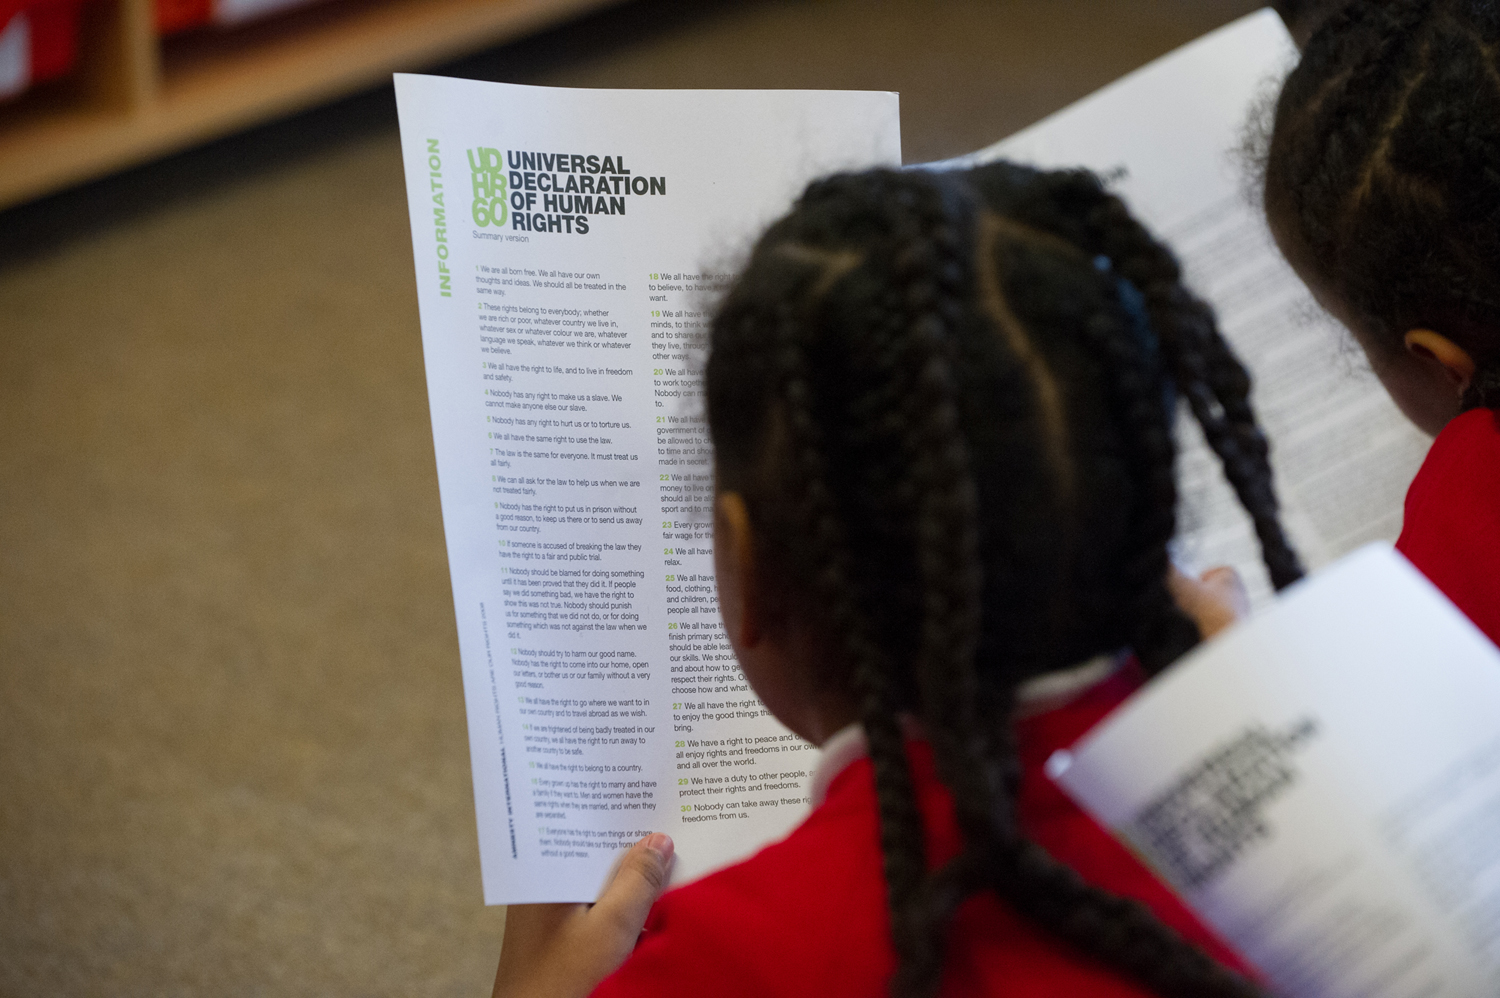 Children reading the Universal Declaration of Human Rights